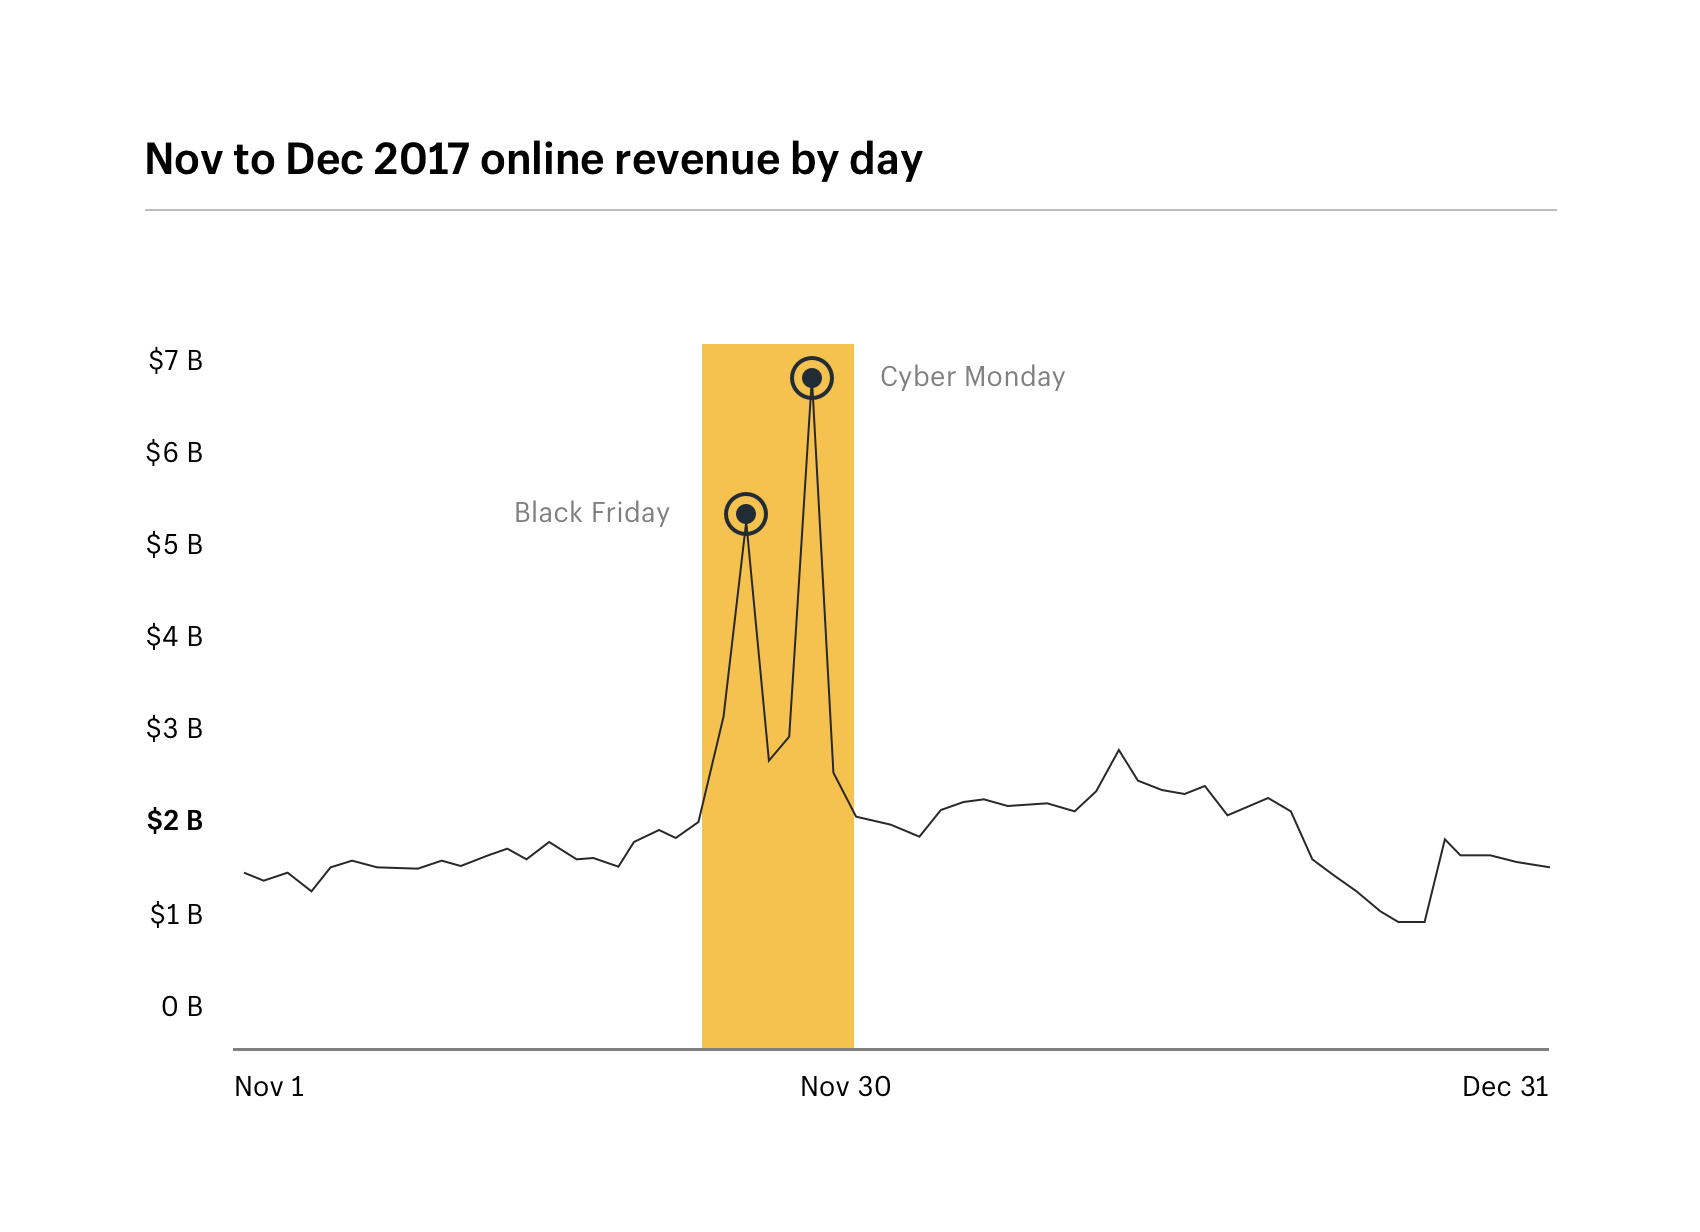 Holiday online revenue by day: Nov to Dec 2017